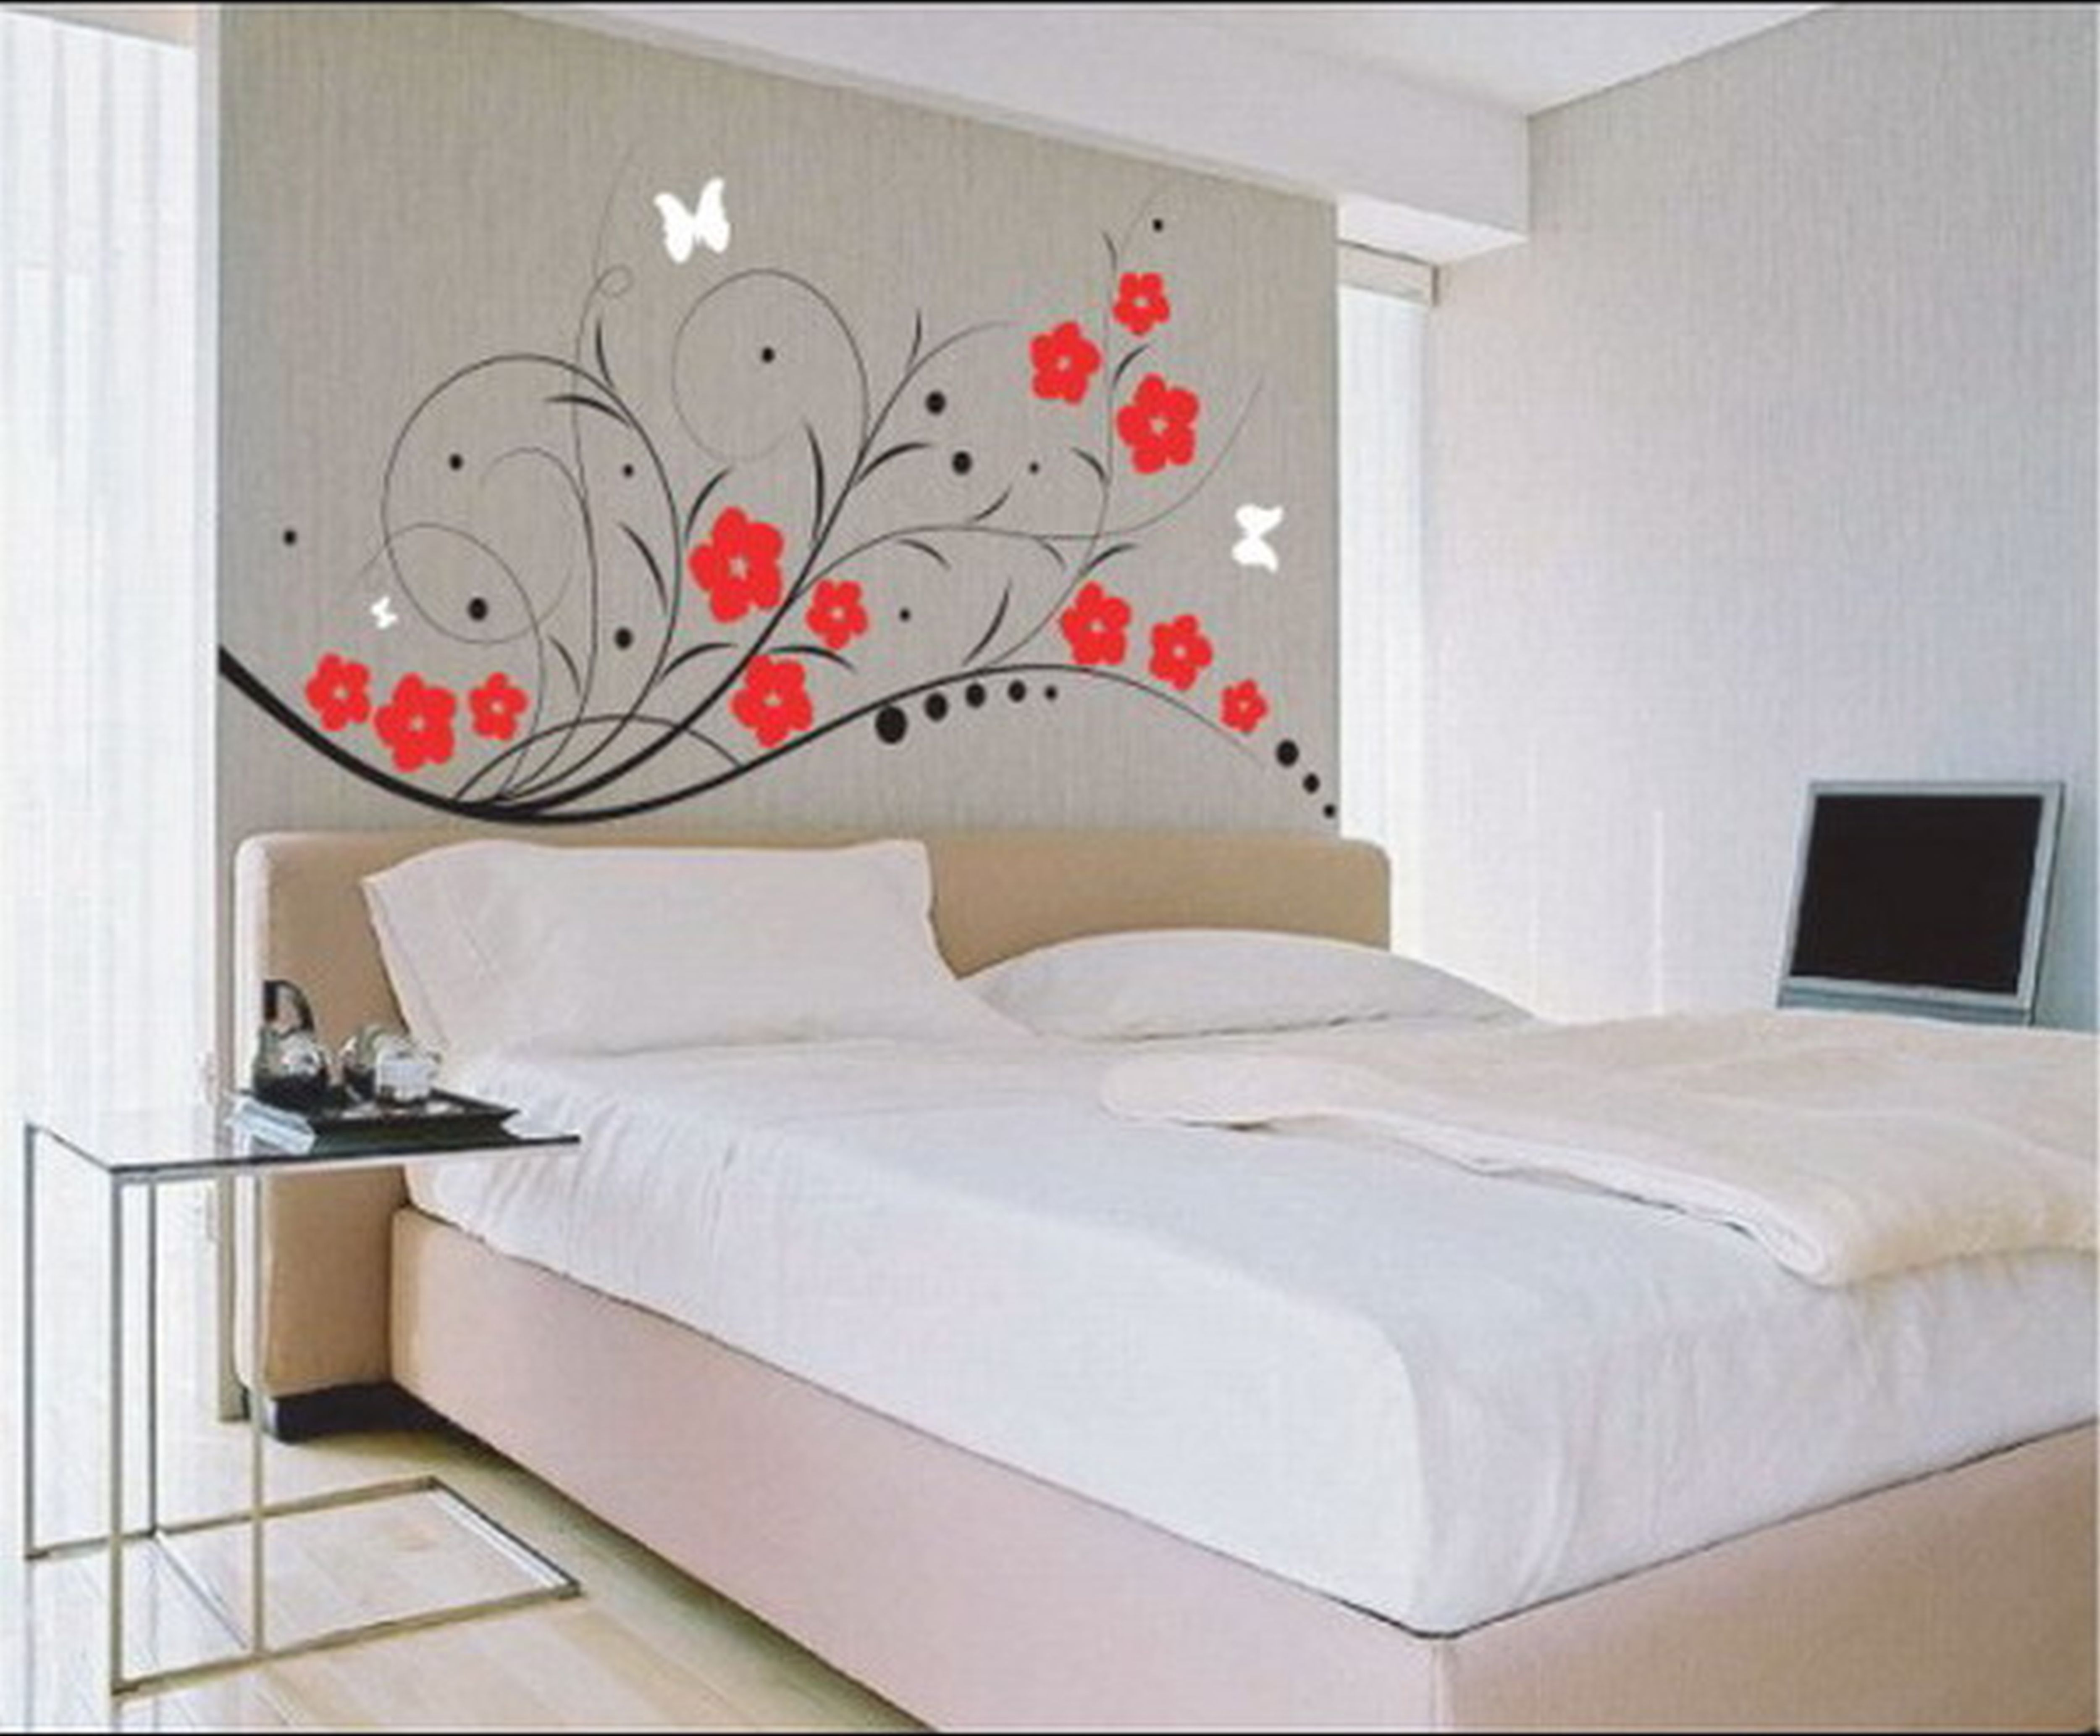 Luxurious Wall Art Design also Bed Plus Table For Bedroom Design